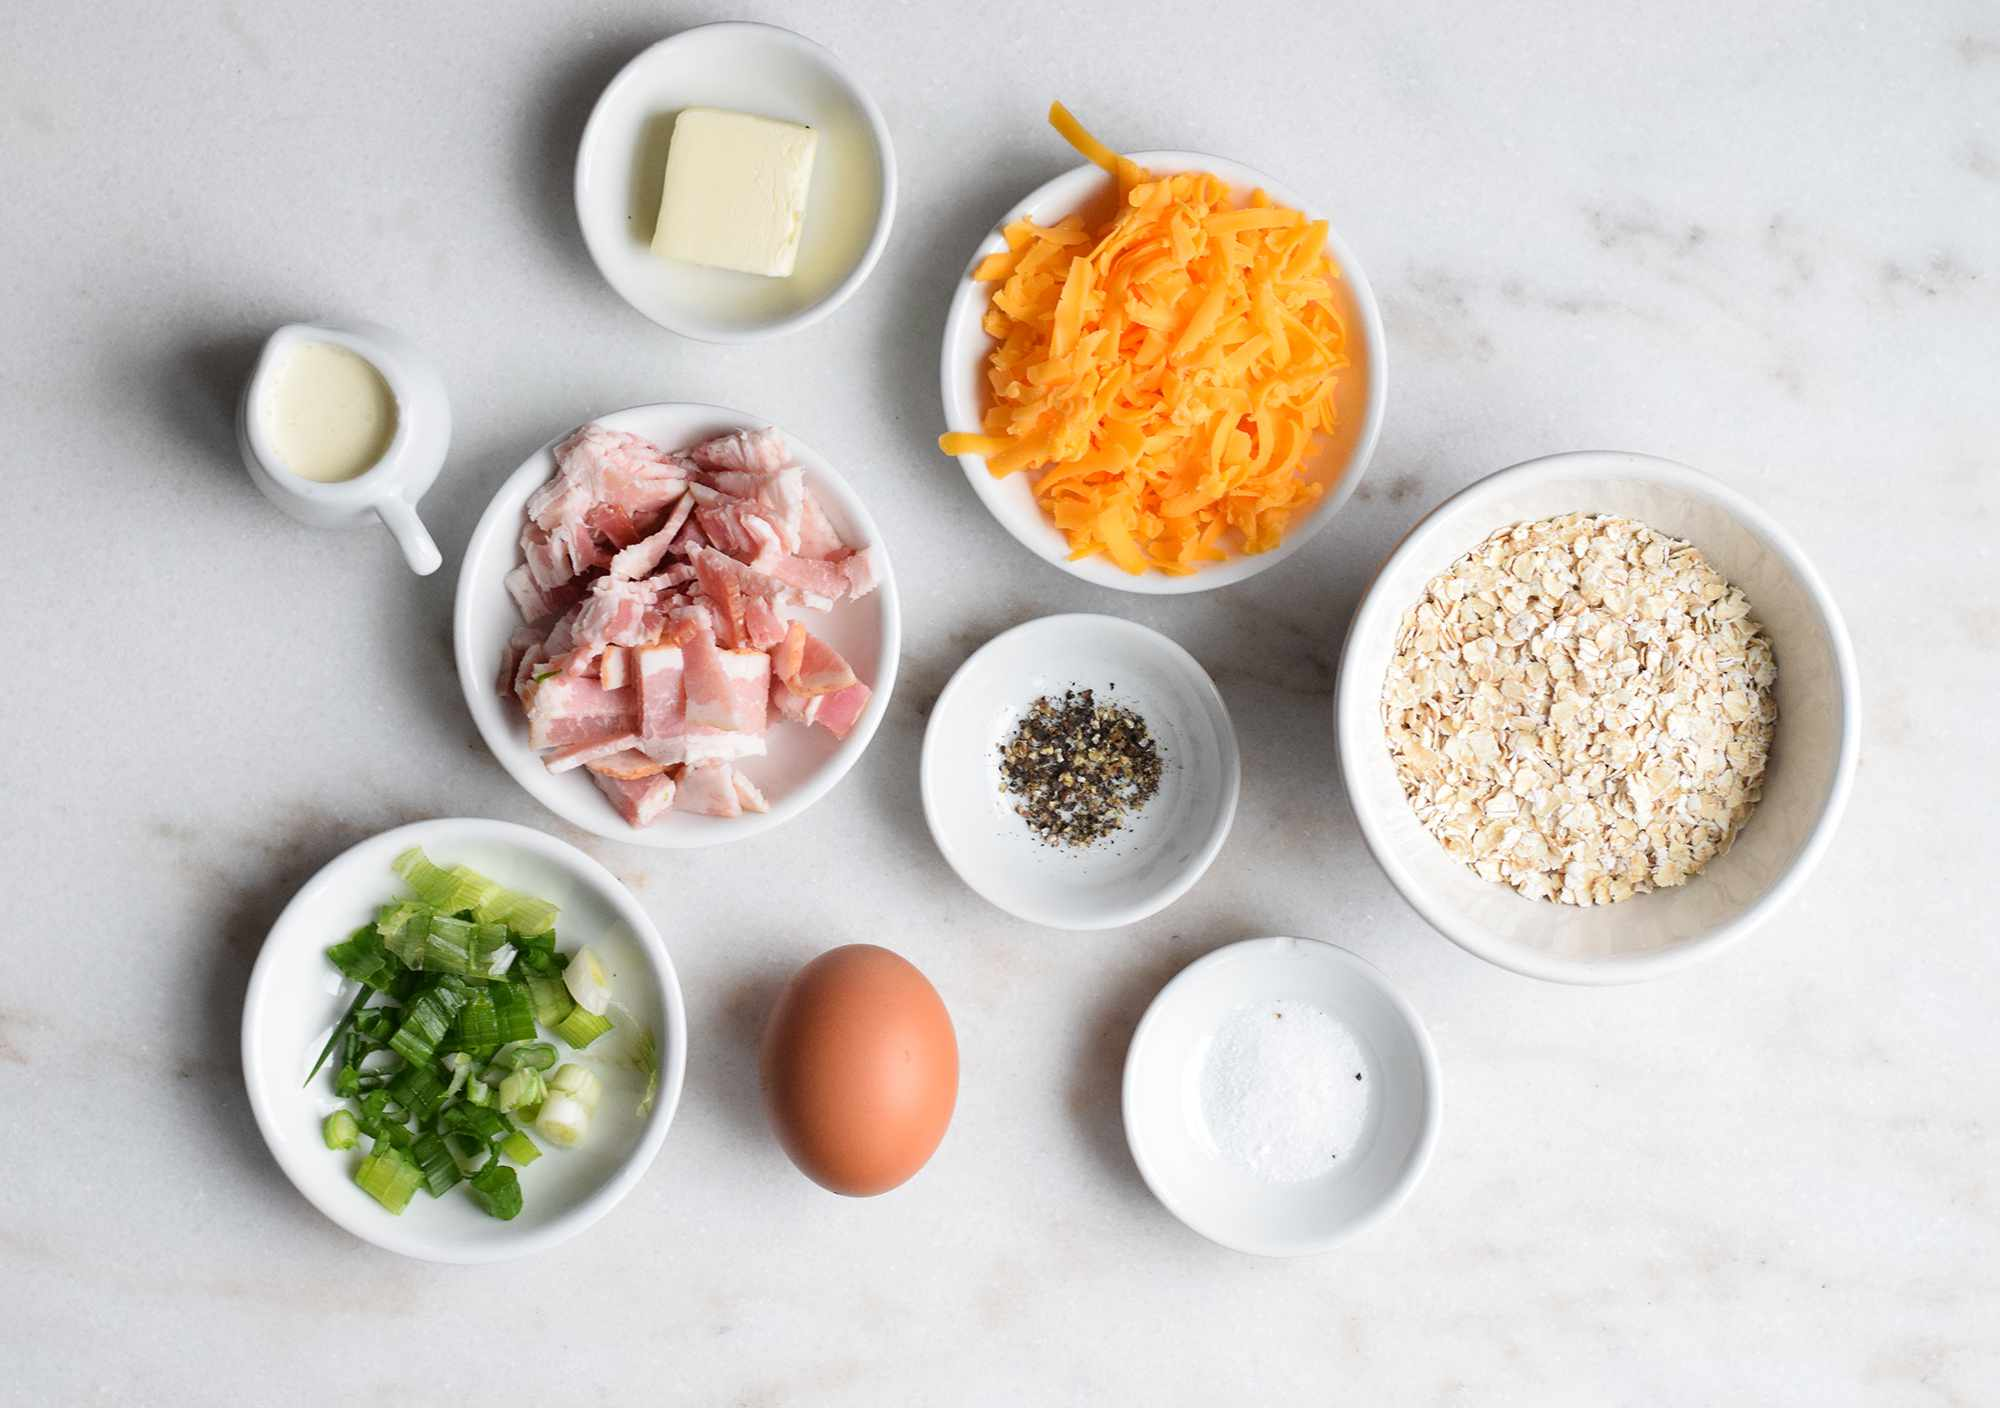 Ingredients for savory oatmeal